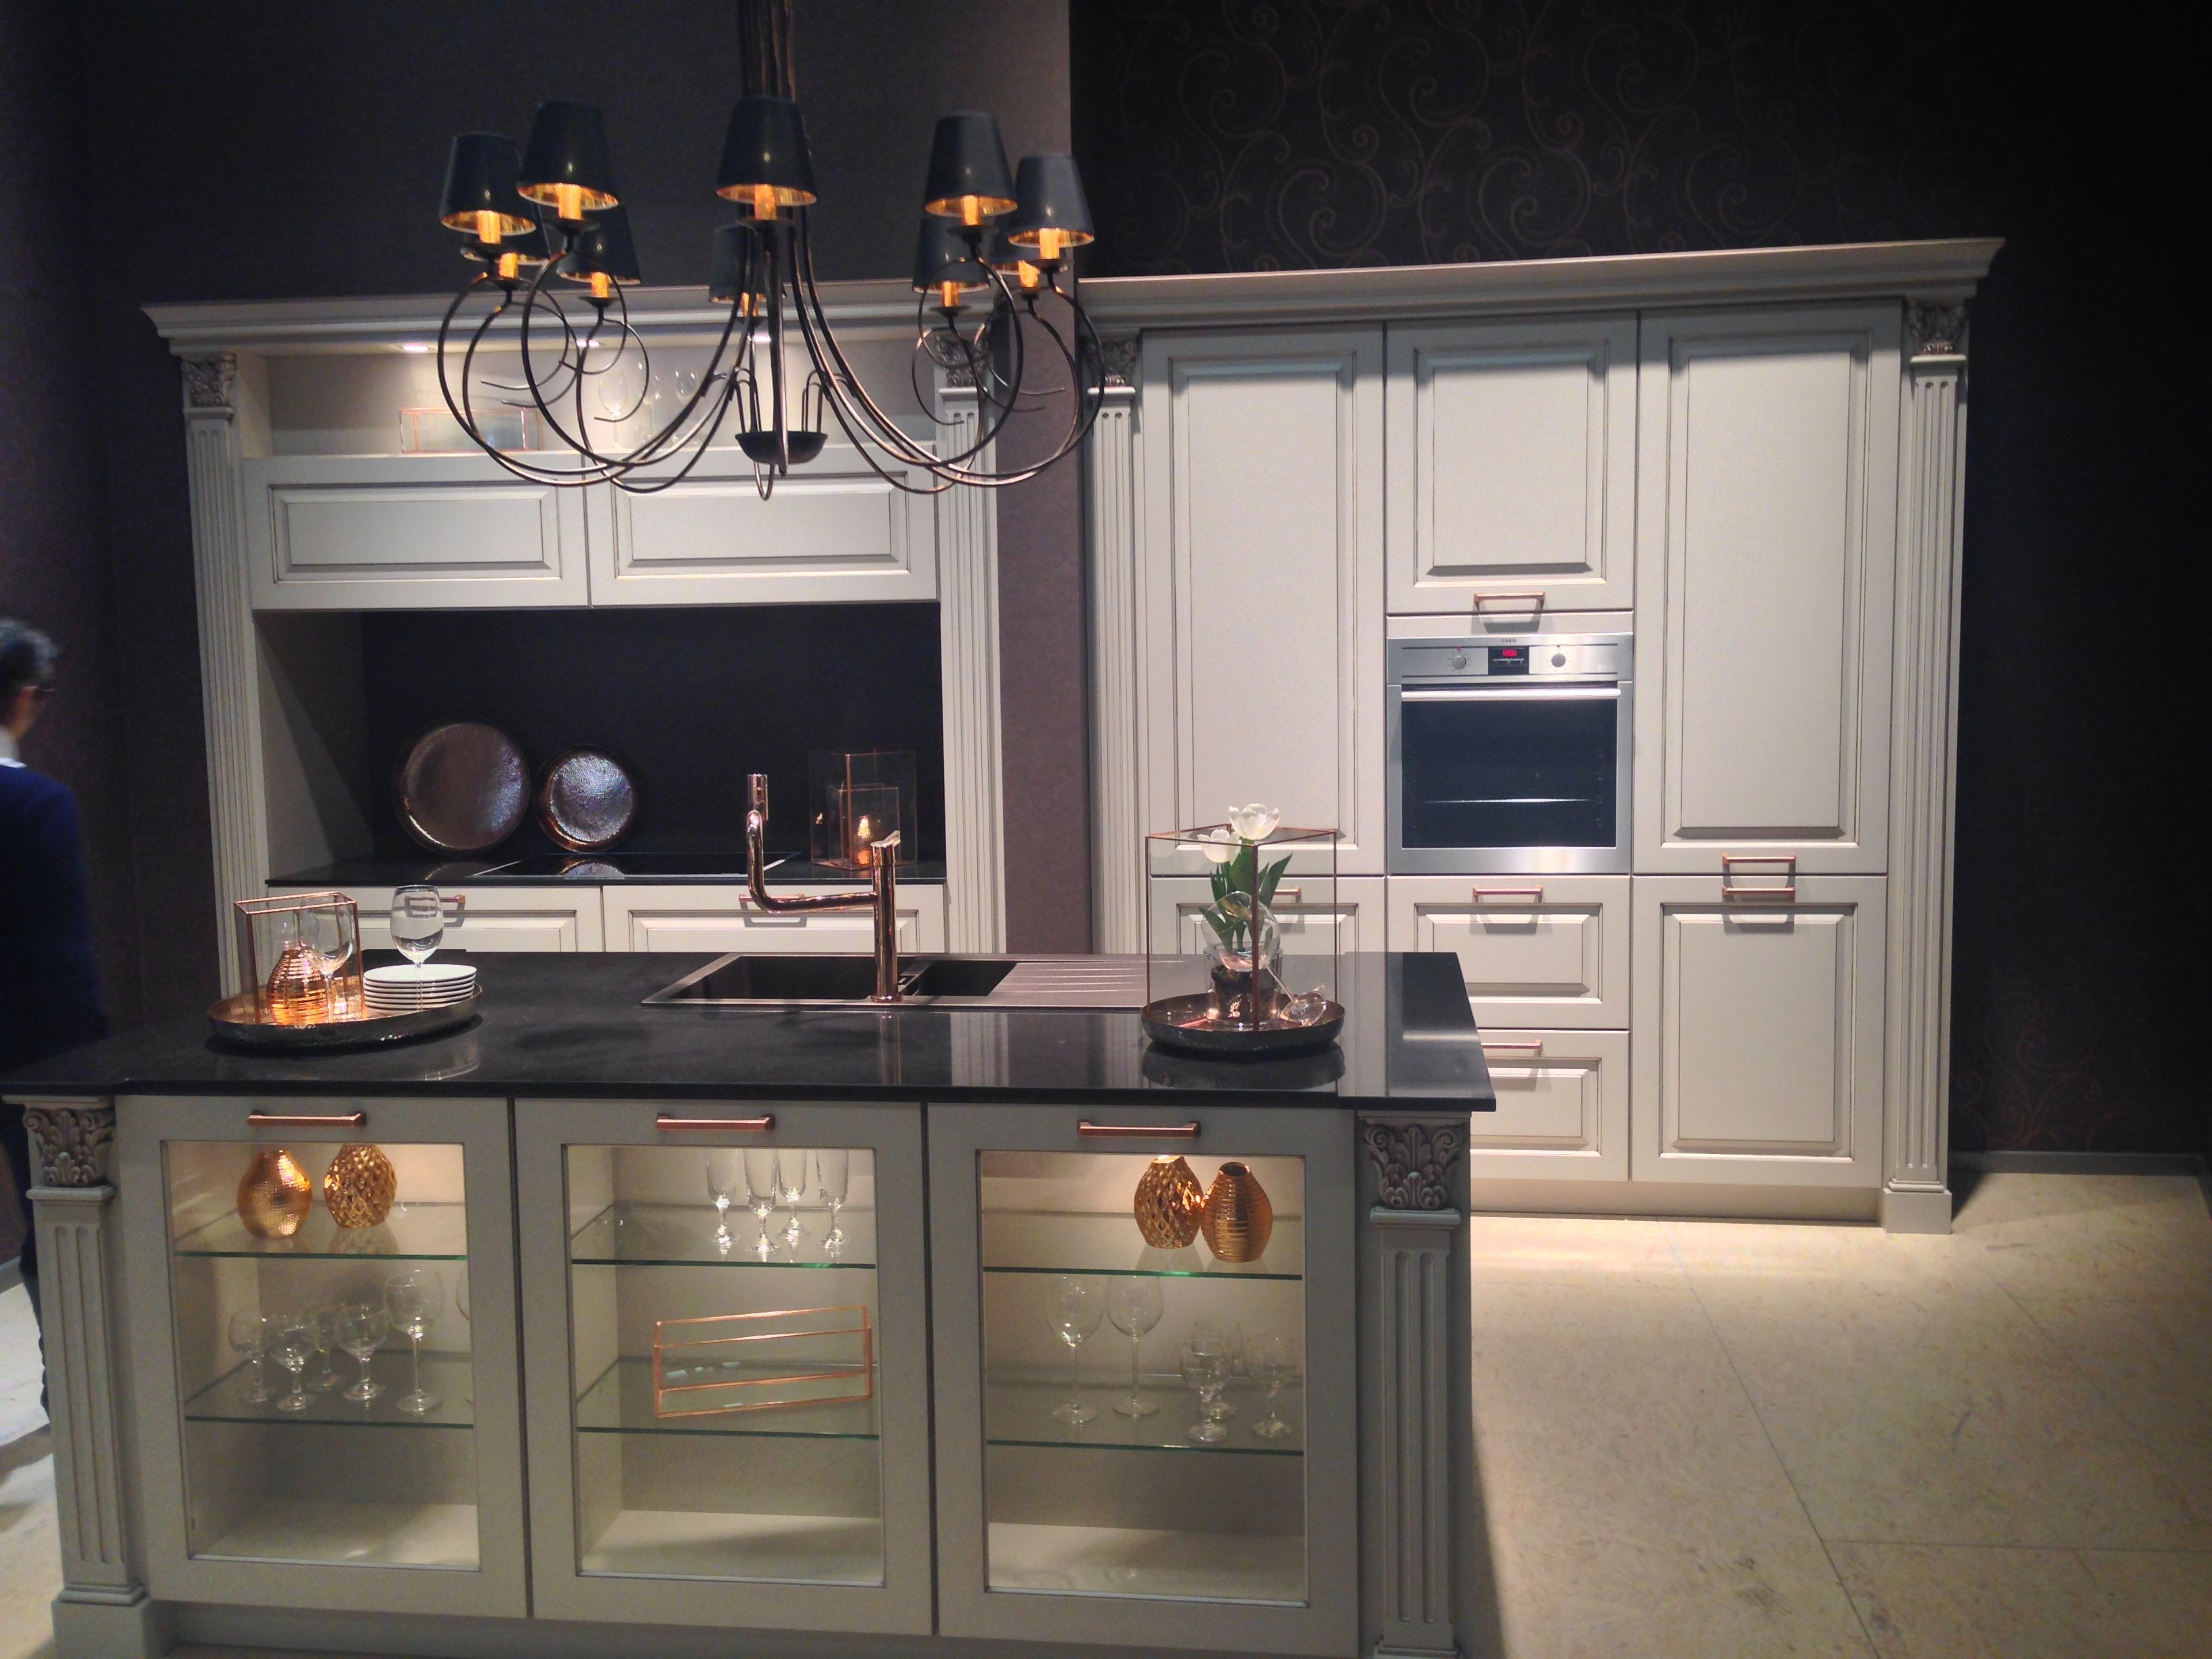 Bauformat Küche Bauformat Küchen Living Kitchen 2015 Pinterest Kitchens